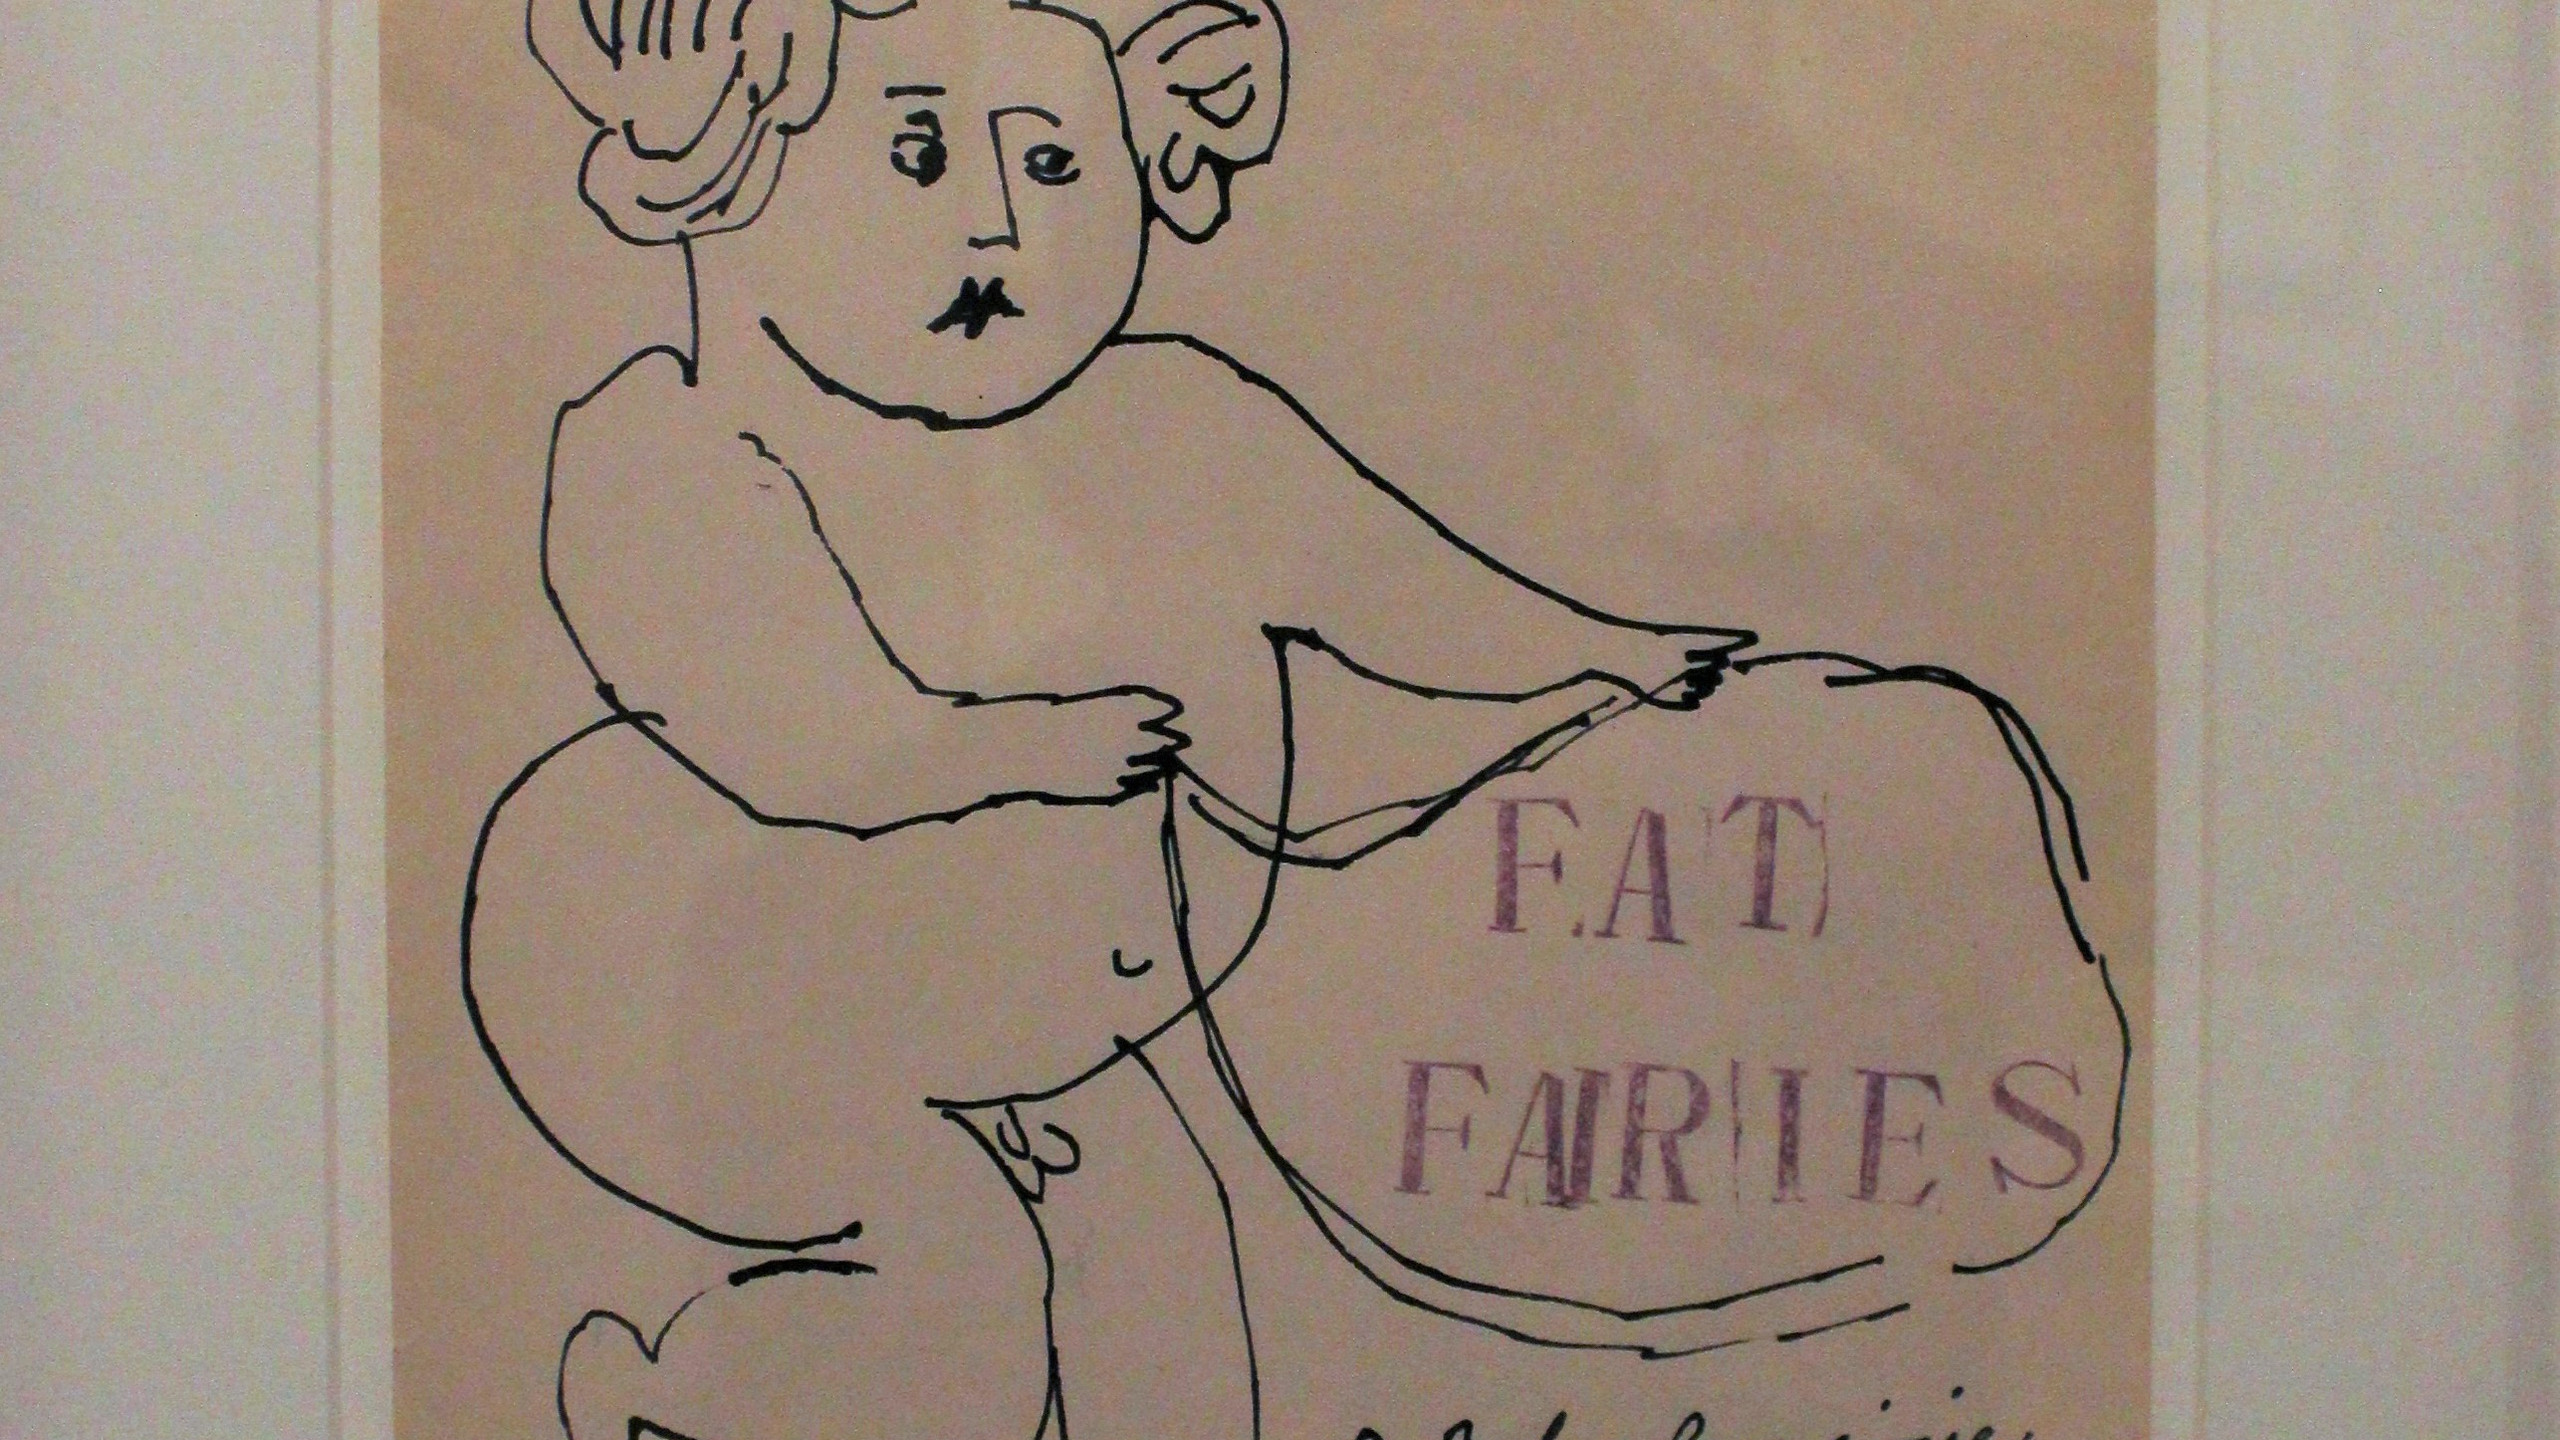 Fat Fairies (1953)